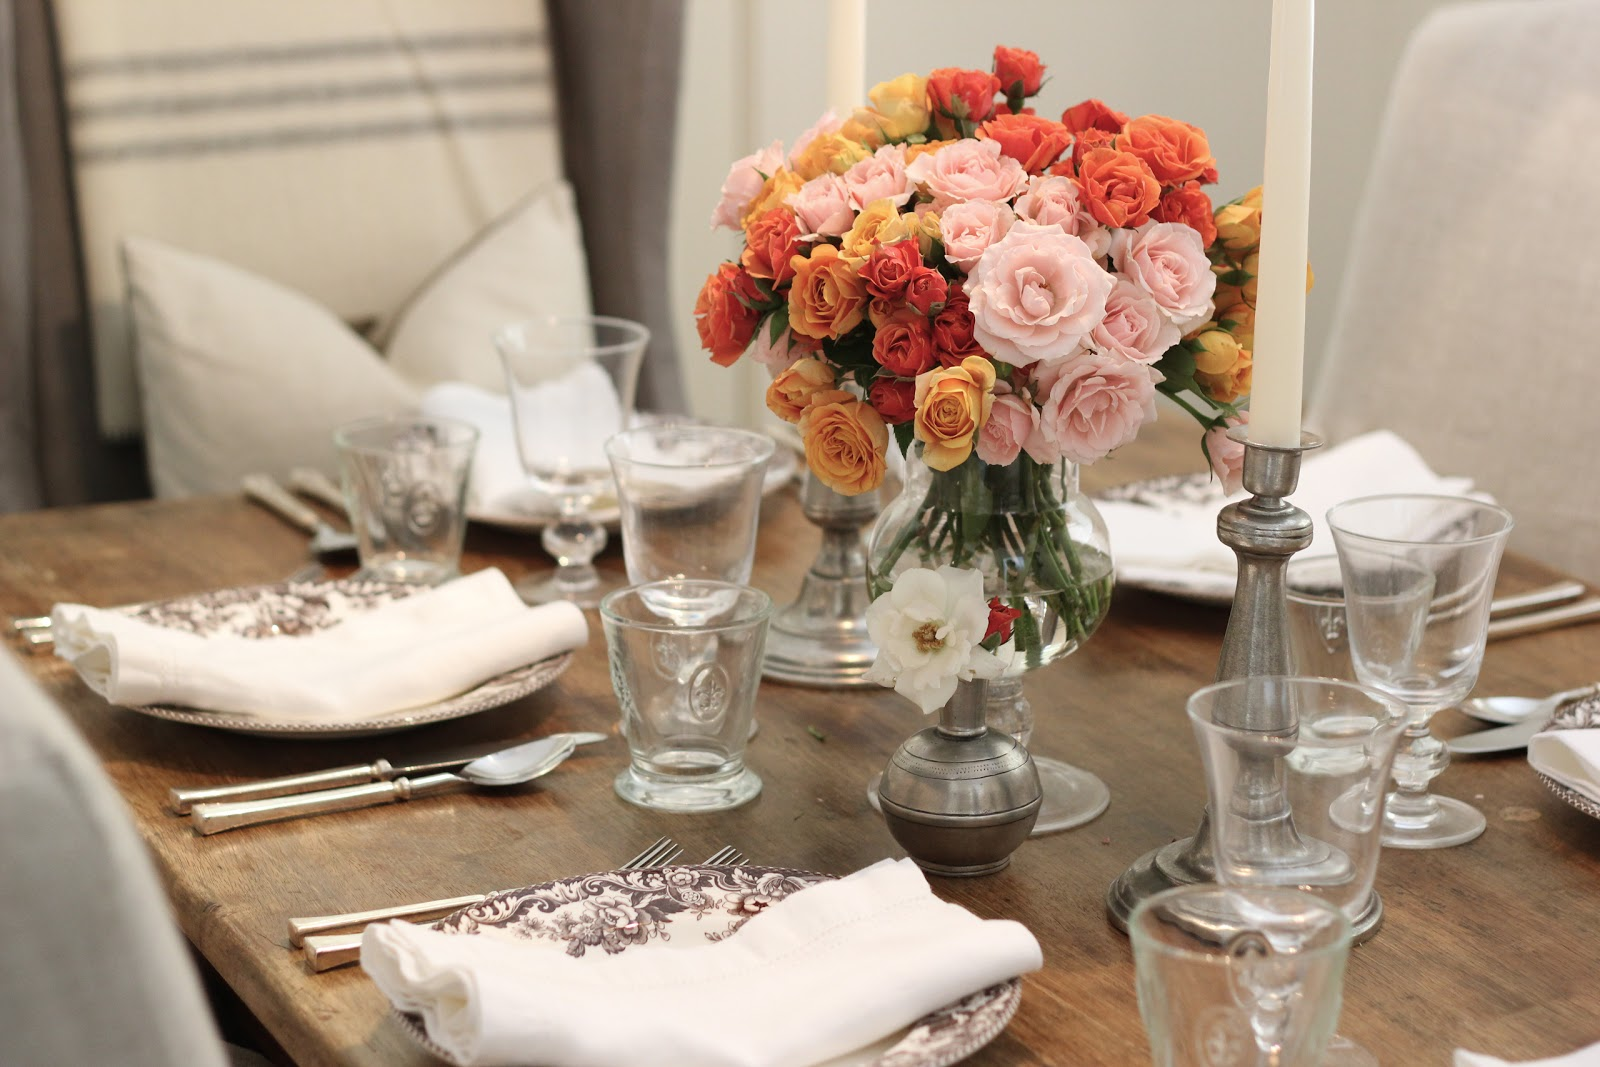 Awesome February Dinner Party Ideas Part - 4: Valentineu0027s Day Dinner Party Table Setting | Coral, Orange U0026 Pale Pink Roses